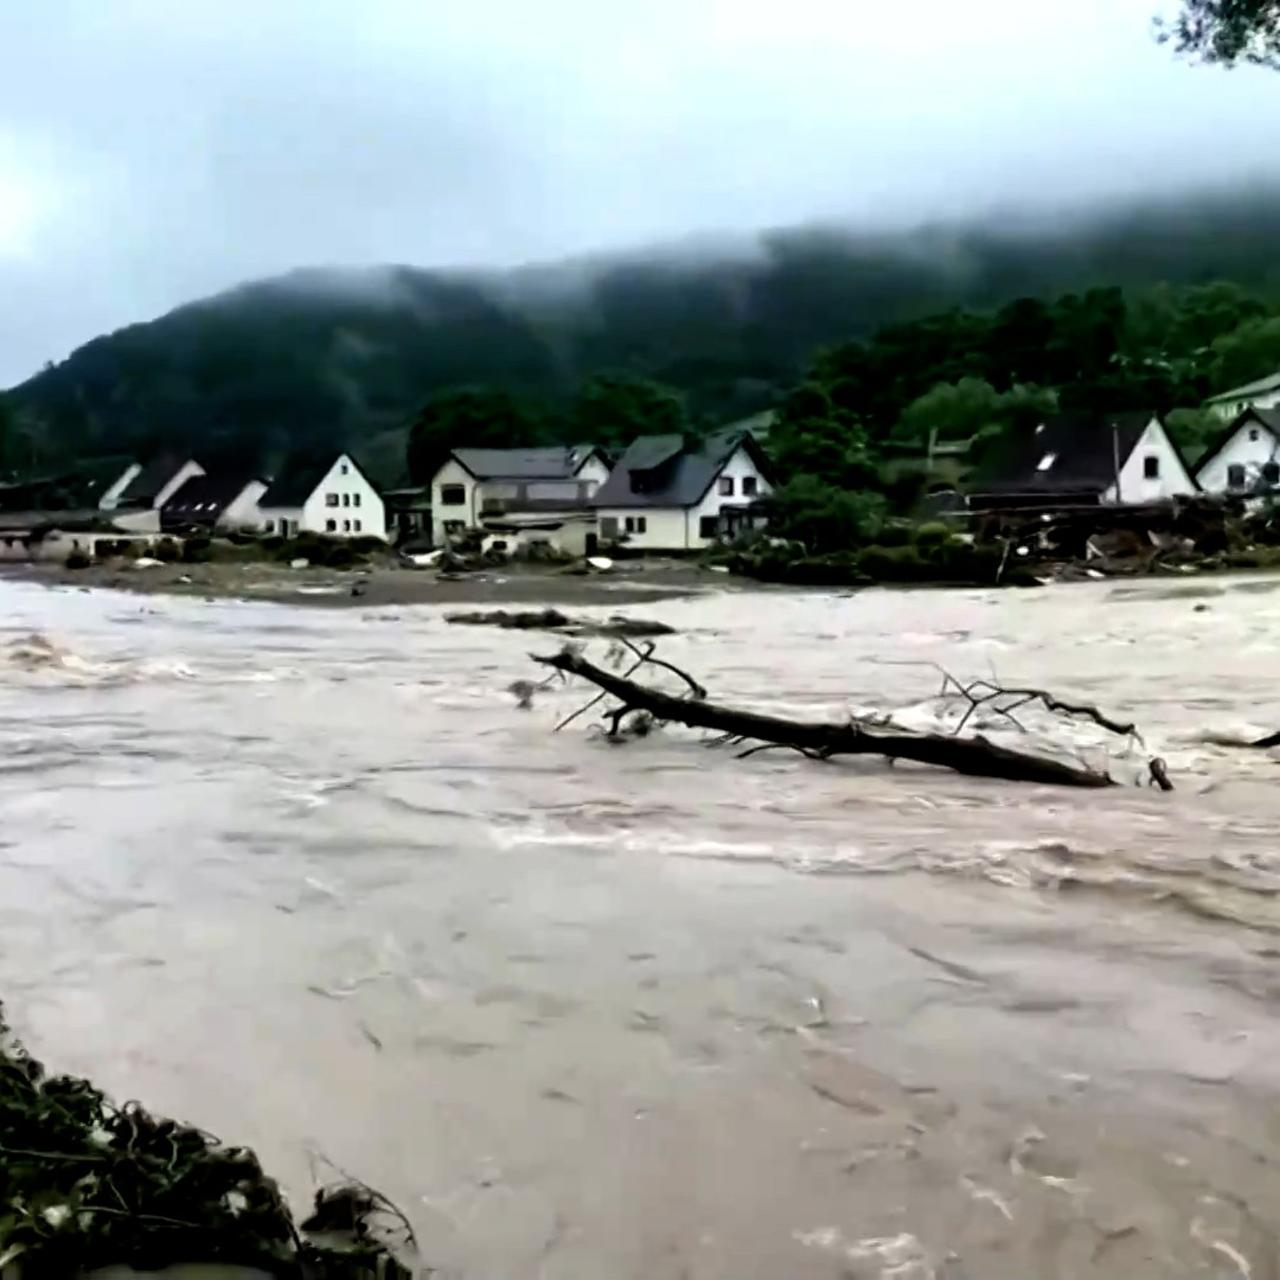 The images of floods in Europe are crazy